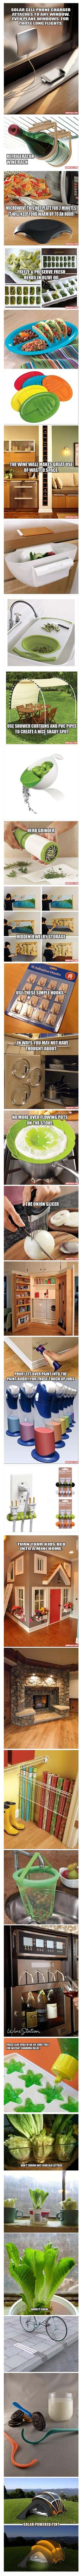 Amazing ideas full of awesome - Imgur